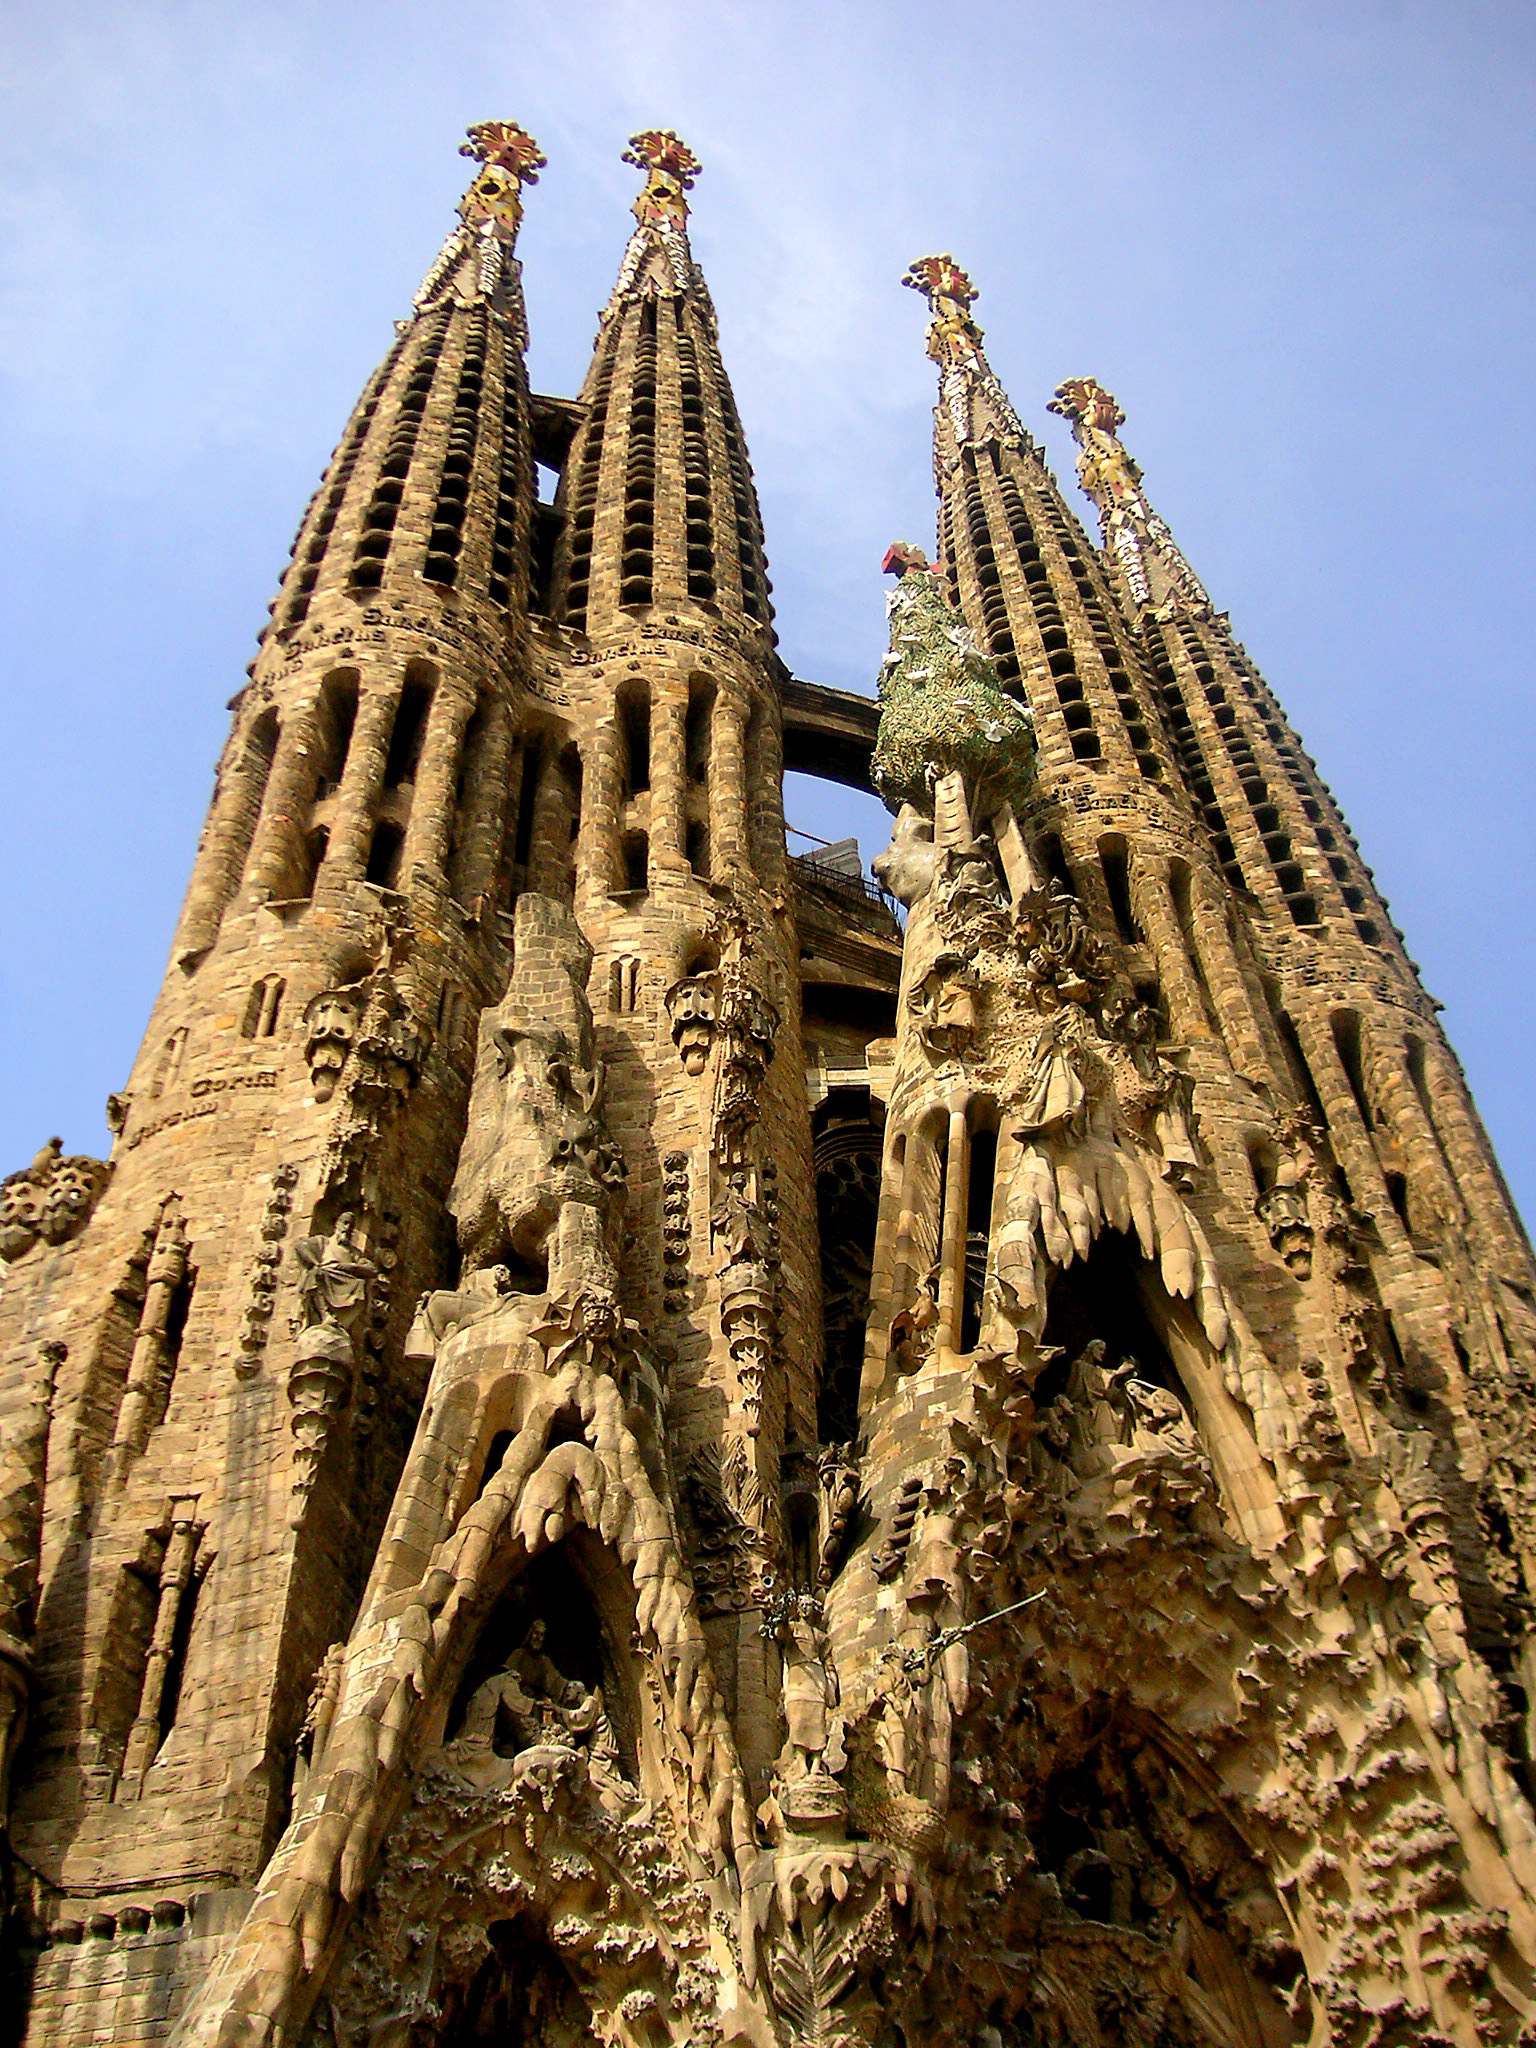 Architecture 101 for games designers animators draft for La sagrada familia barcelona spain